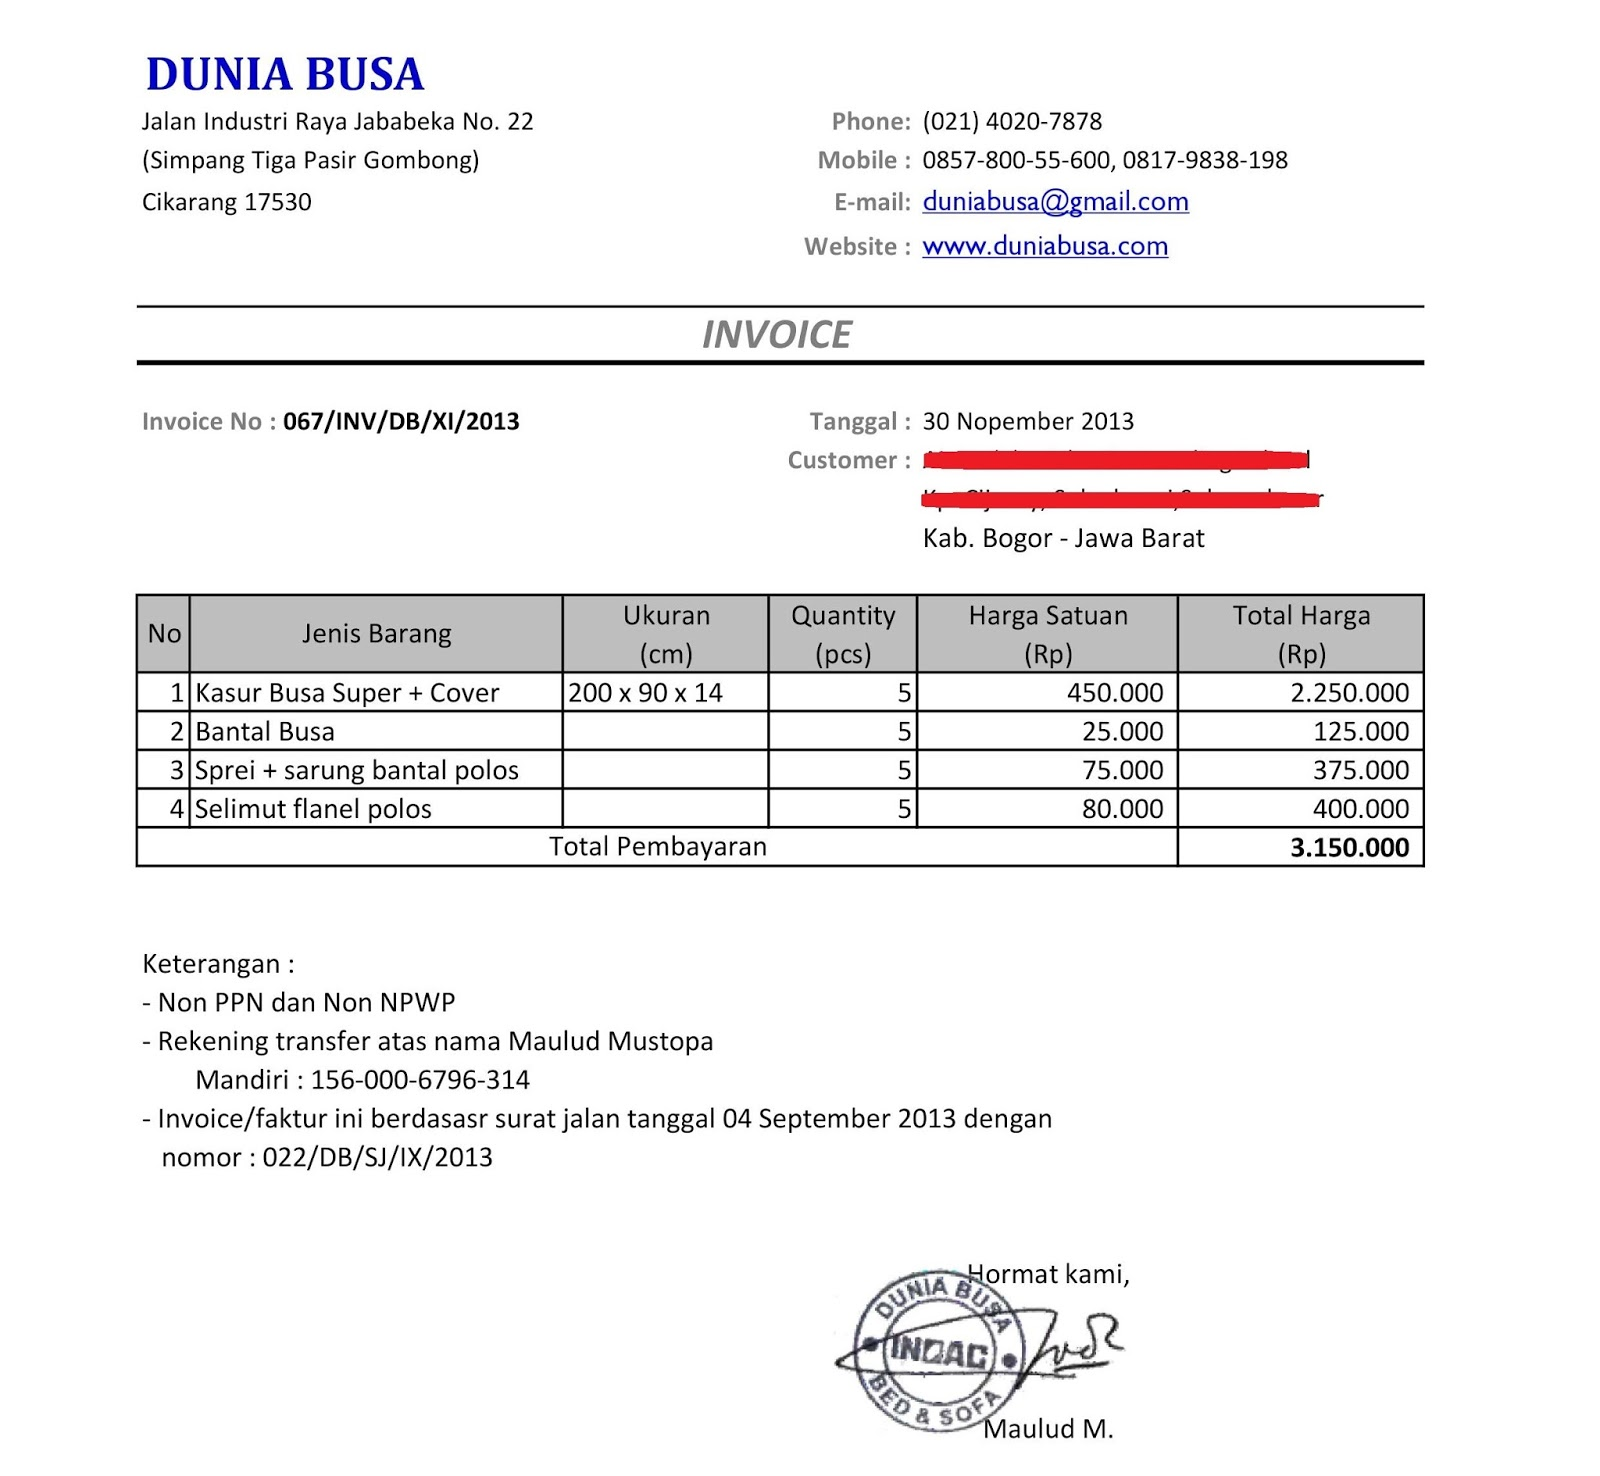 Usdgus  Gorgeous Free Invoice Online  Create Invoice Online  Invoice Template  With Magnificent Contoh Format Invoice Atau Surat Tagihan  Brankas Arsip  Free Invoice Online With Delightful Create Invoice In Quickbooks Also Past Due Invoice Template In Addition Invoice Price Calculator And Pro Forma Invoice Template As Well As Acura Mdx Invoice Additionally Creating Invoices In Excel From Sklepco With Usdgus  Magnificent Free Invoice Online  Create Invoice Online  Invoice Template  With Delightful Contoh Format Invoice Atau Surat Tagihan  Brankas Arsip  Free Invoice Online And Gorgeous Create Invoice In Quickbooks Also Past Due Invoice Template In Addition Invoice Price Calculator From Sklepco